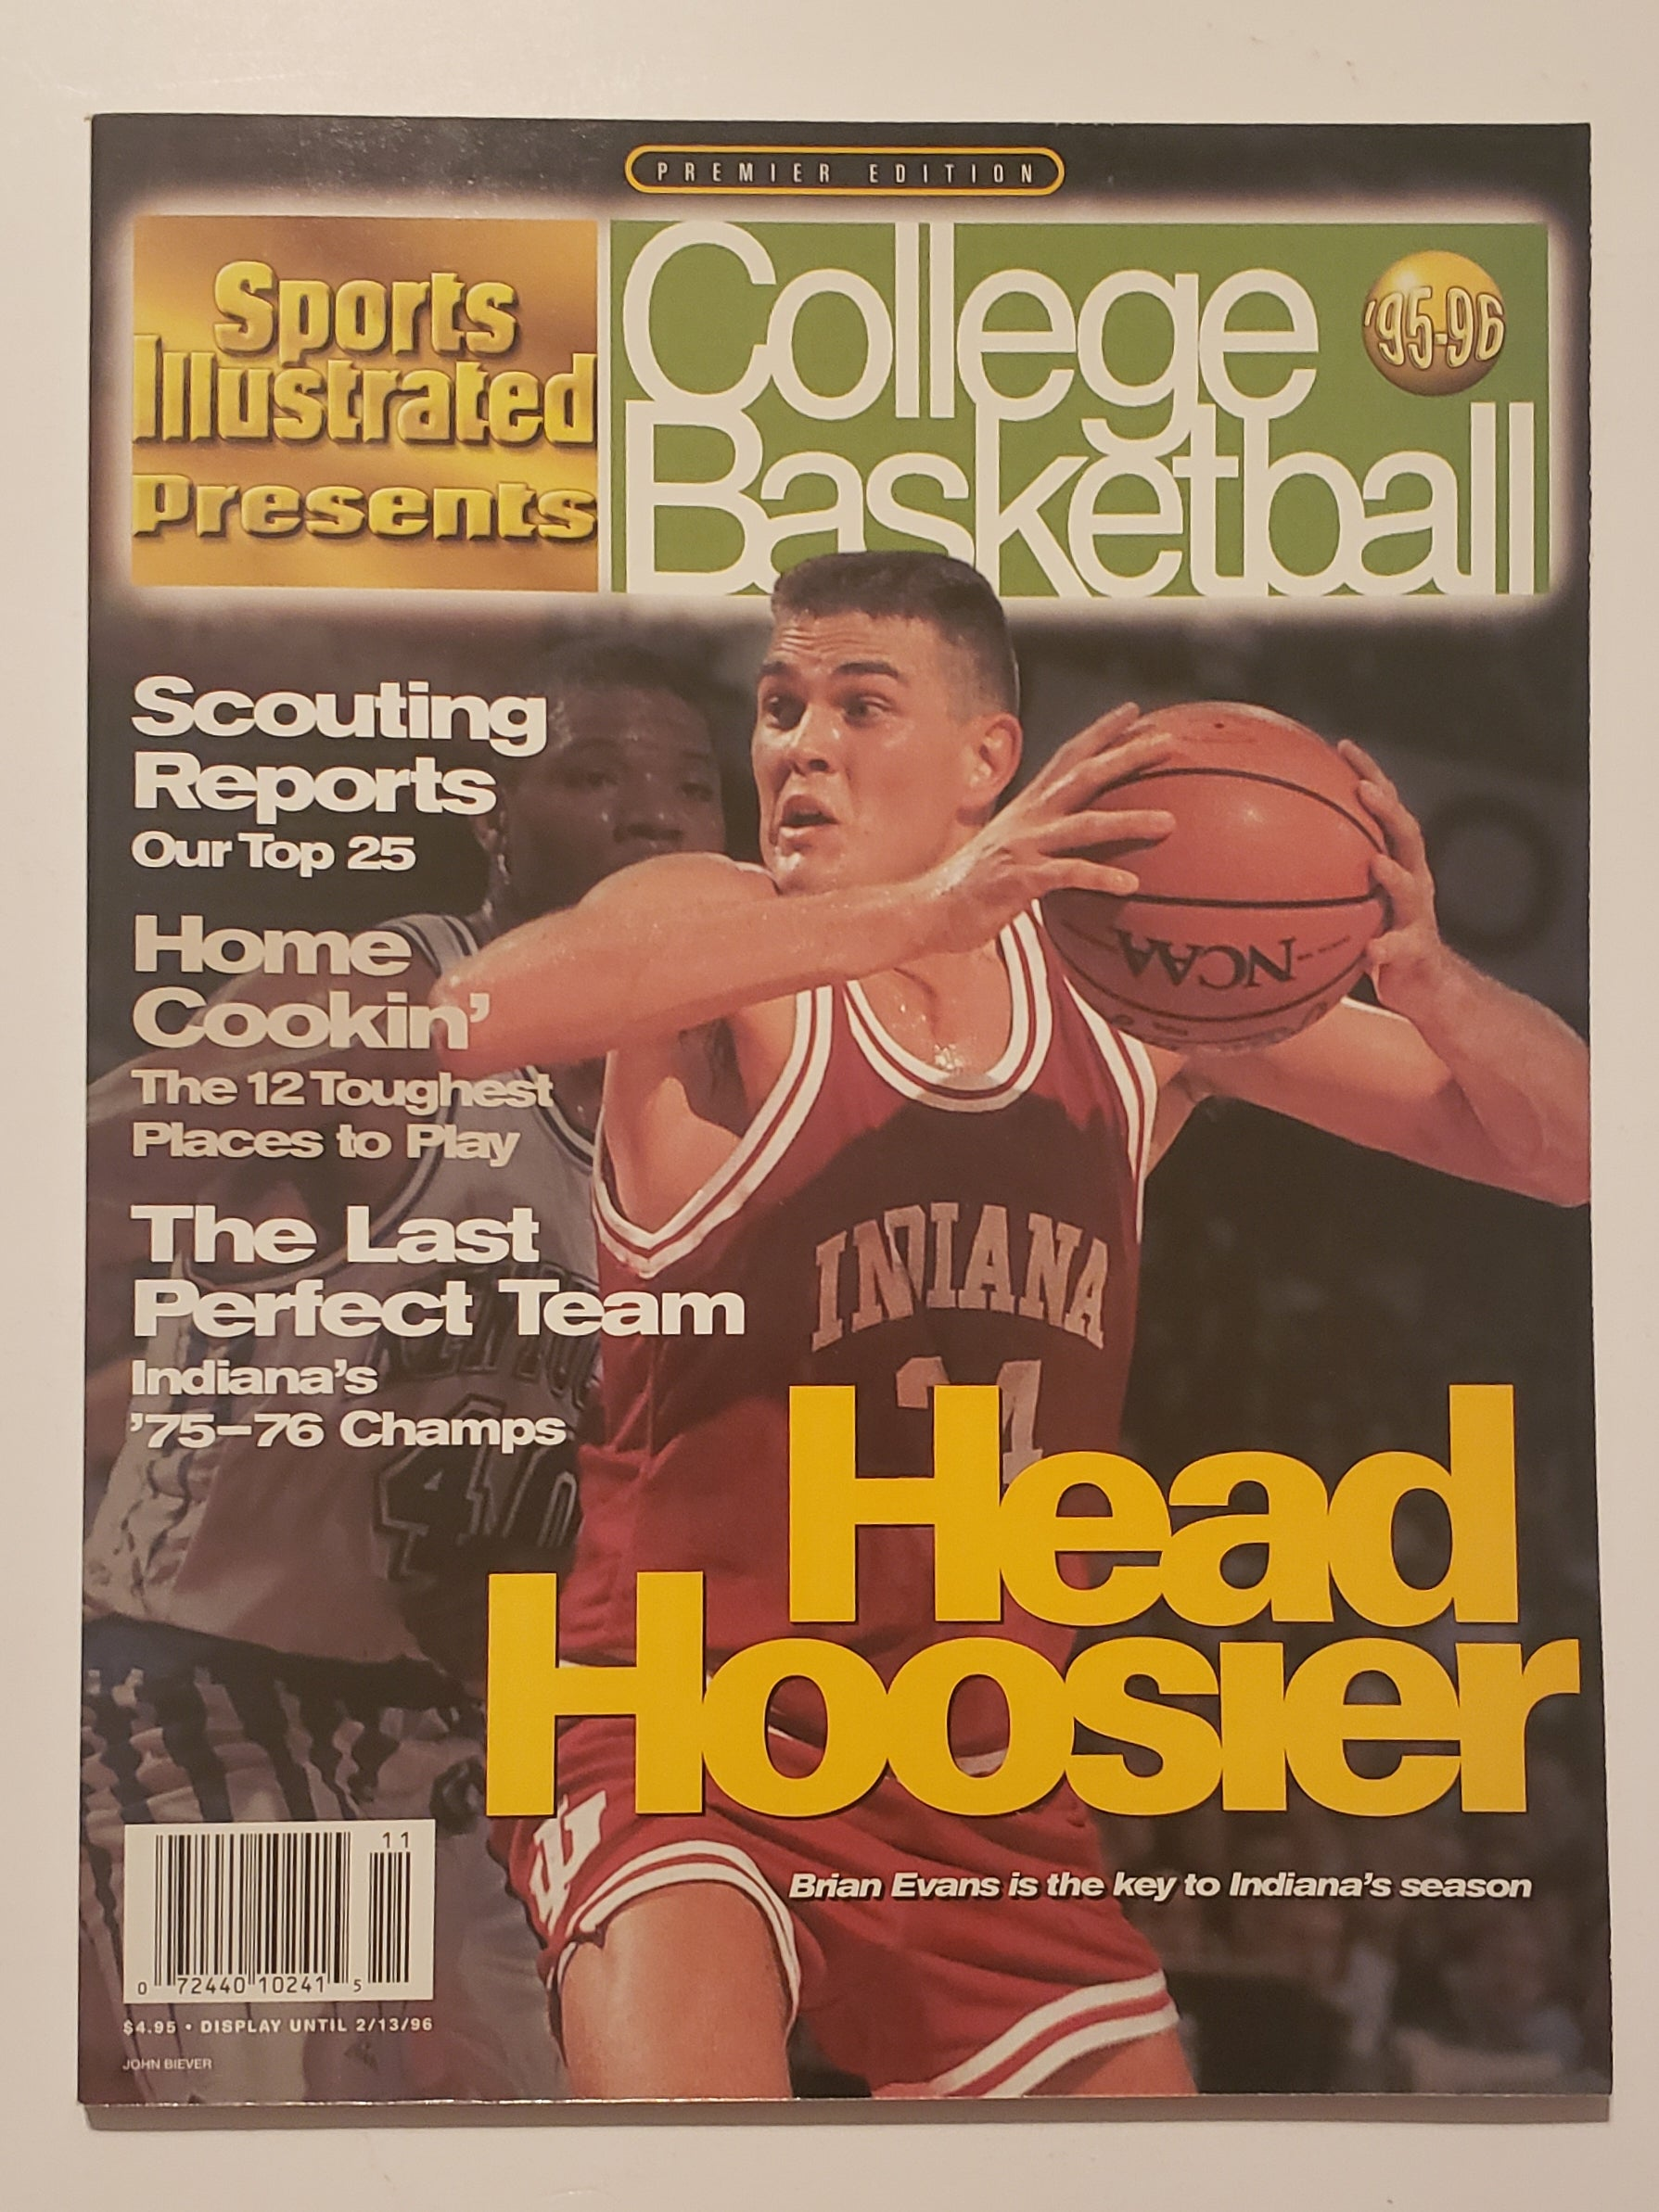 '95-'96 Sports Illustrated Presents College Basketball Brian Evans